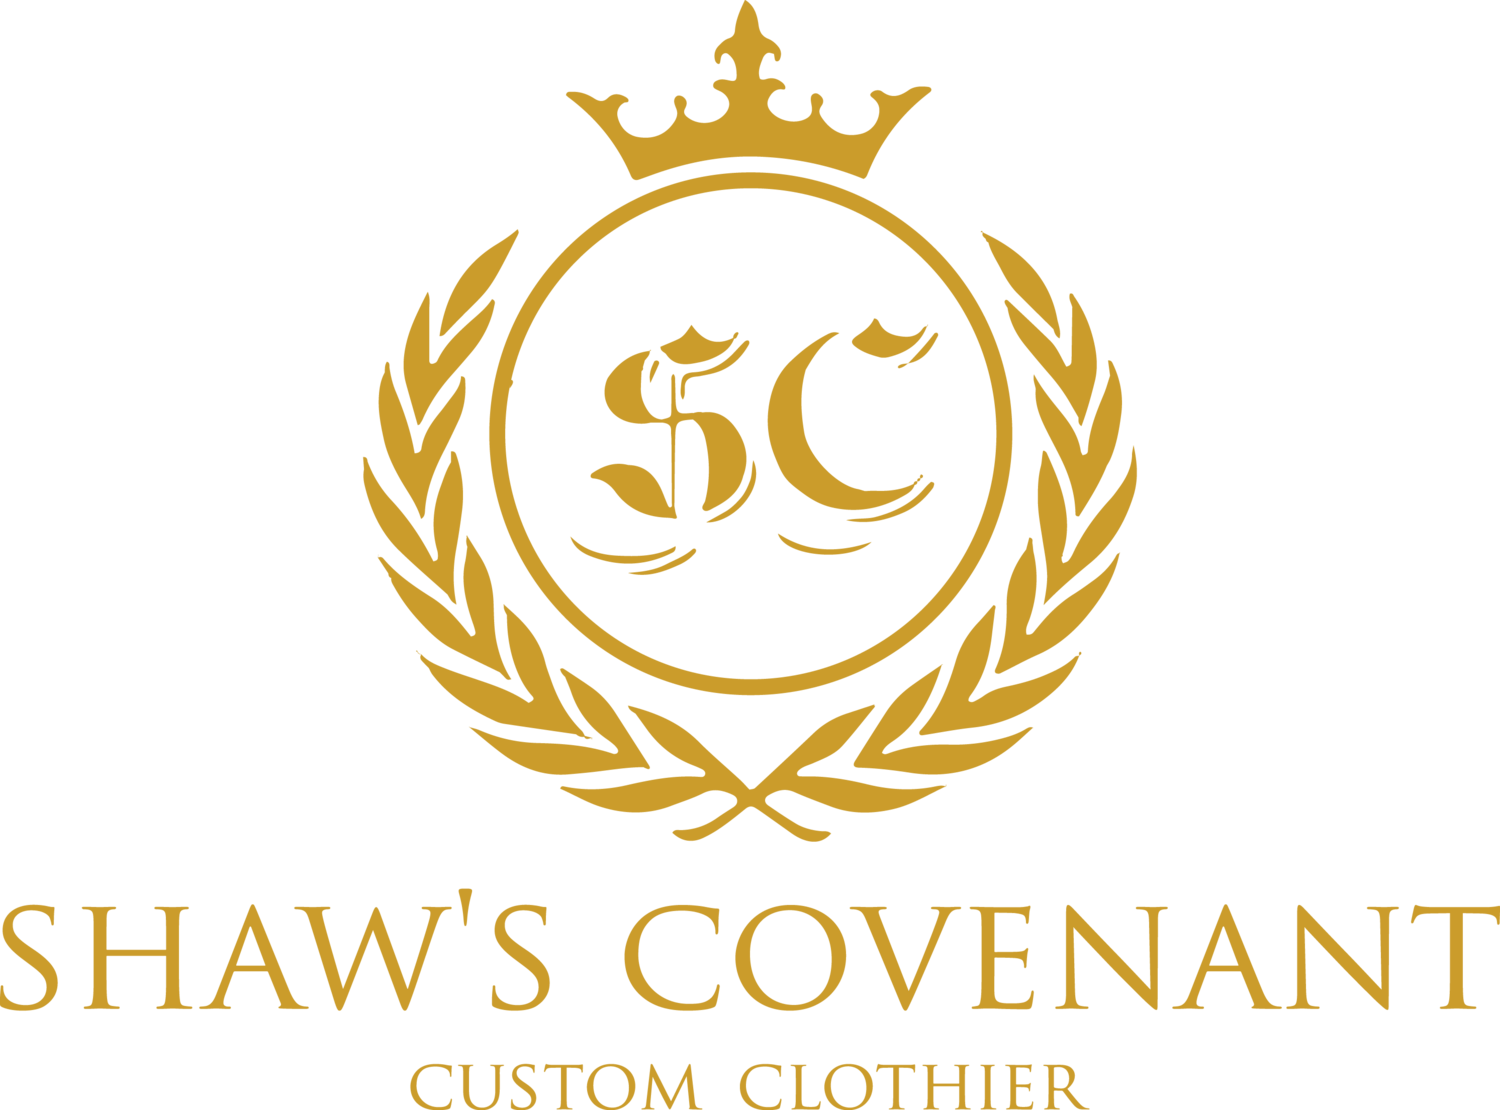 Shaw's Covenant